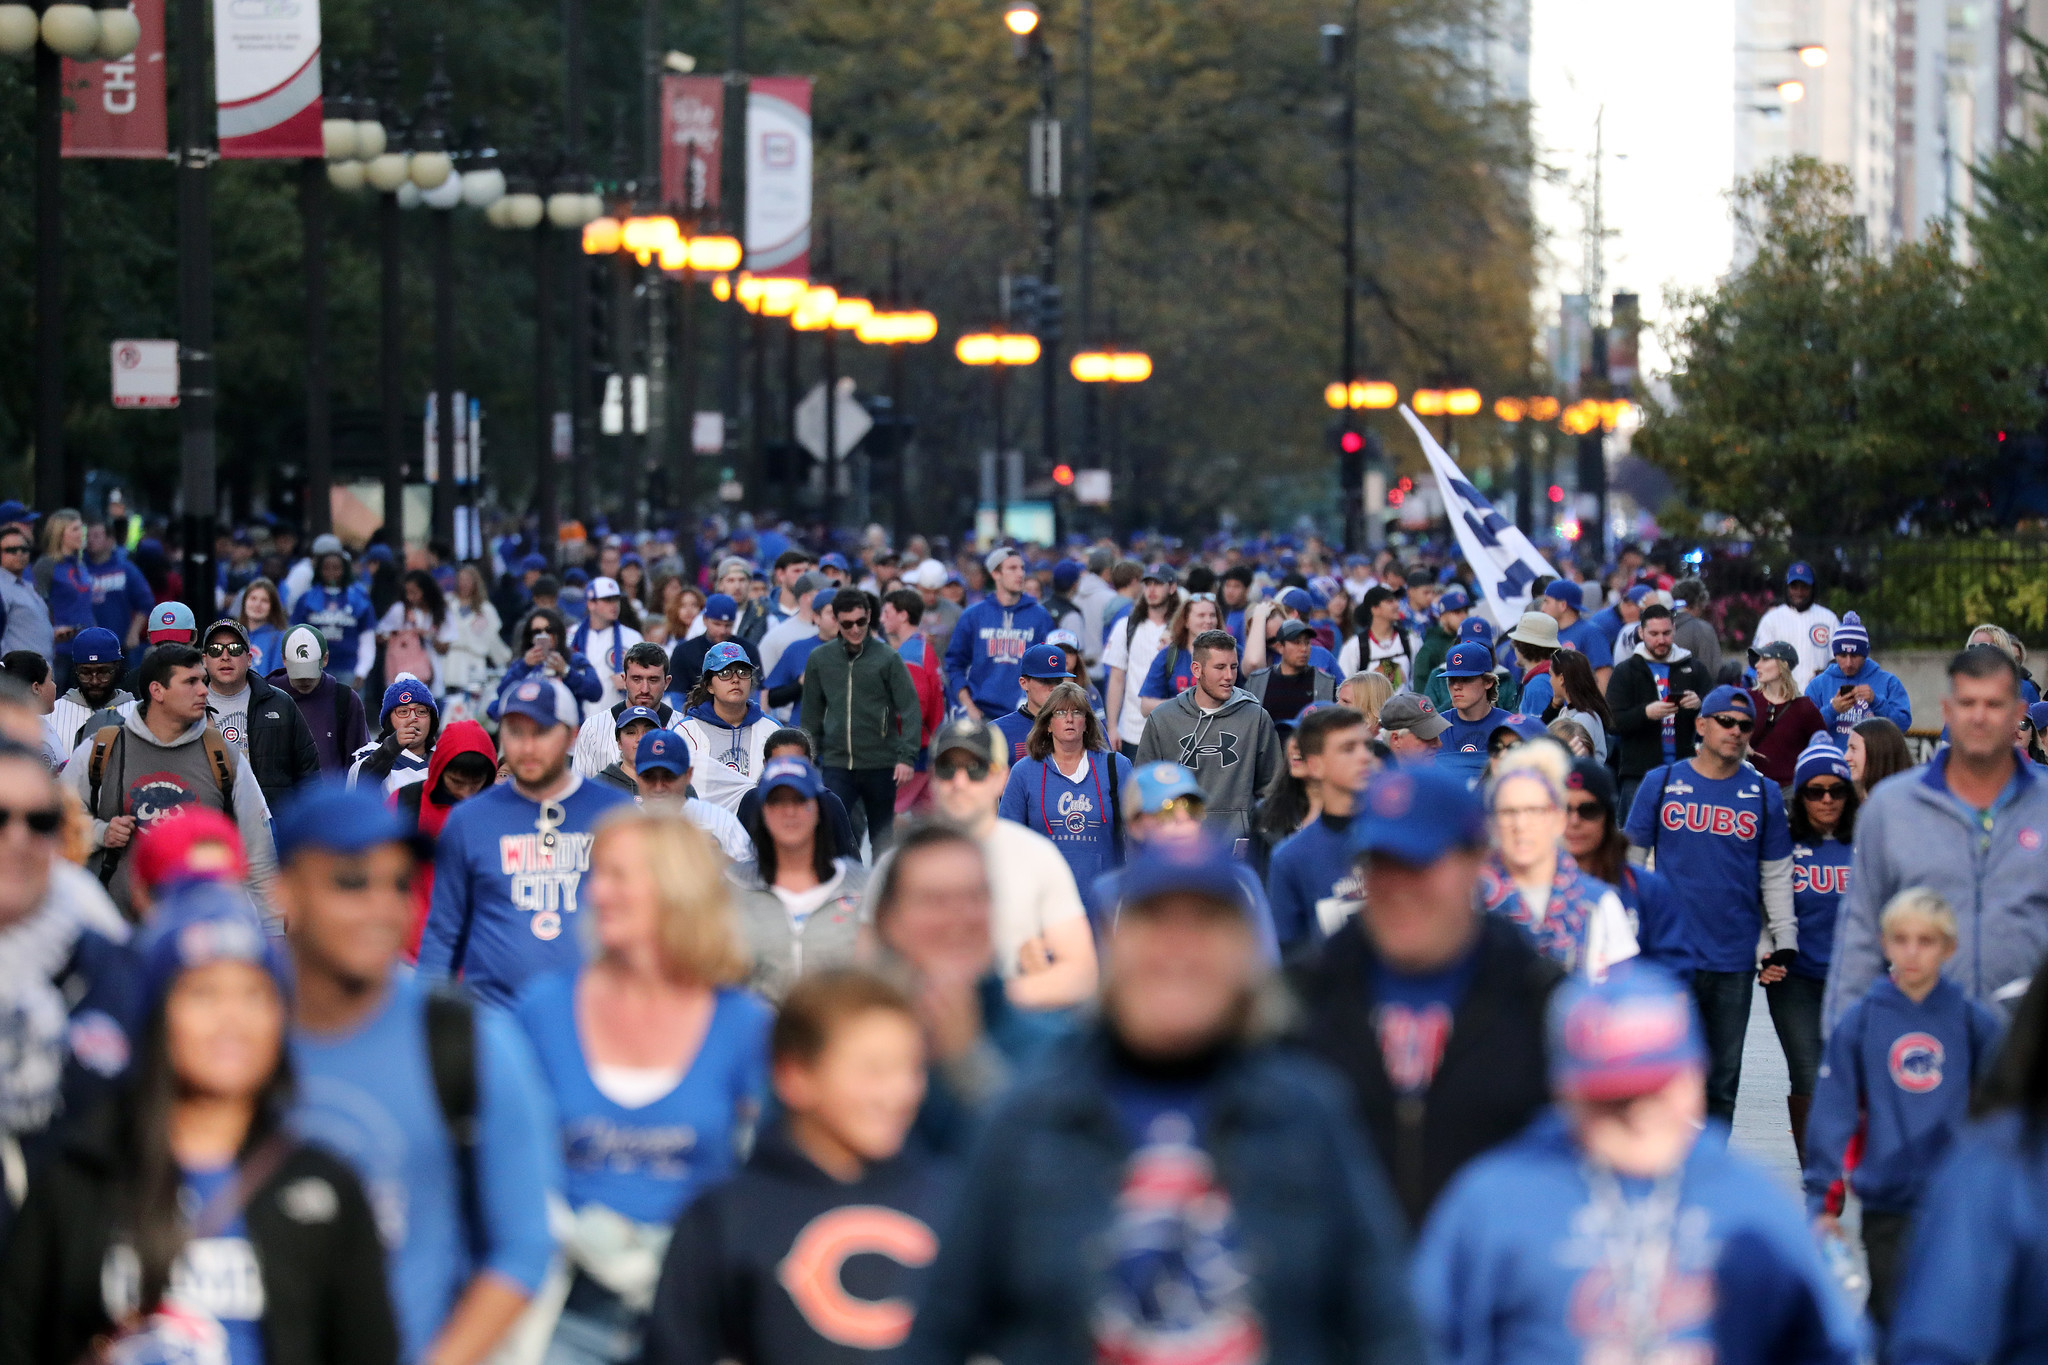 Huge crowds downtown at Wrigley for Cubs World Series parade